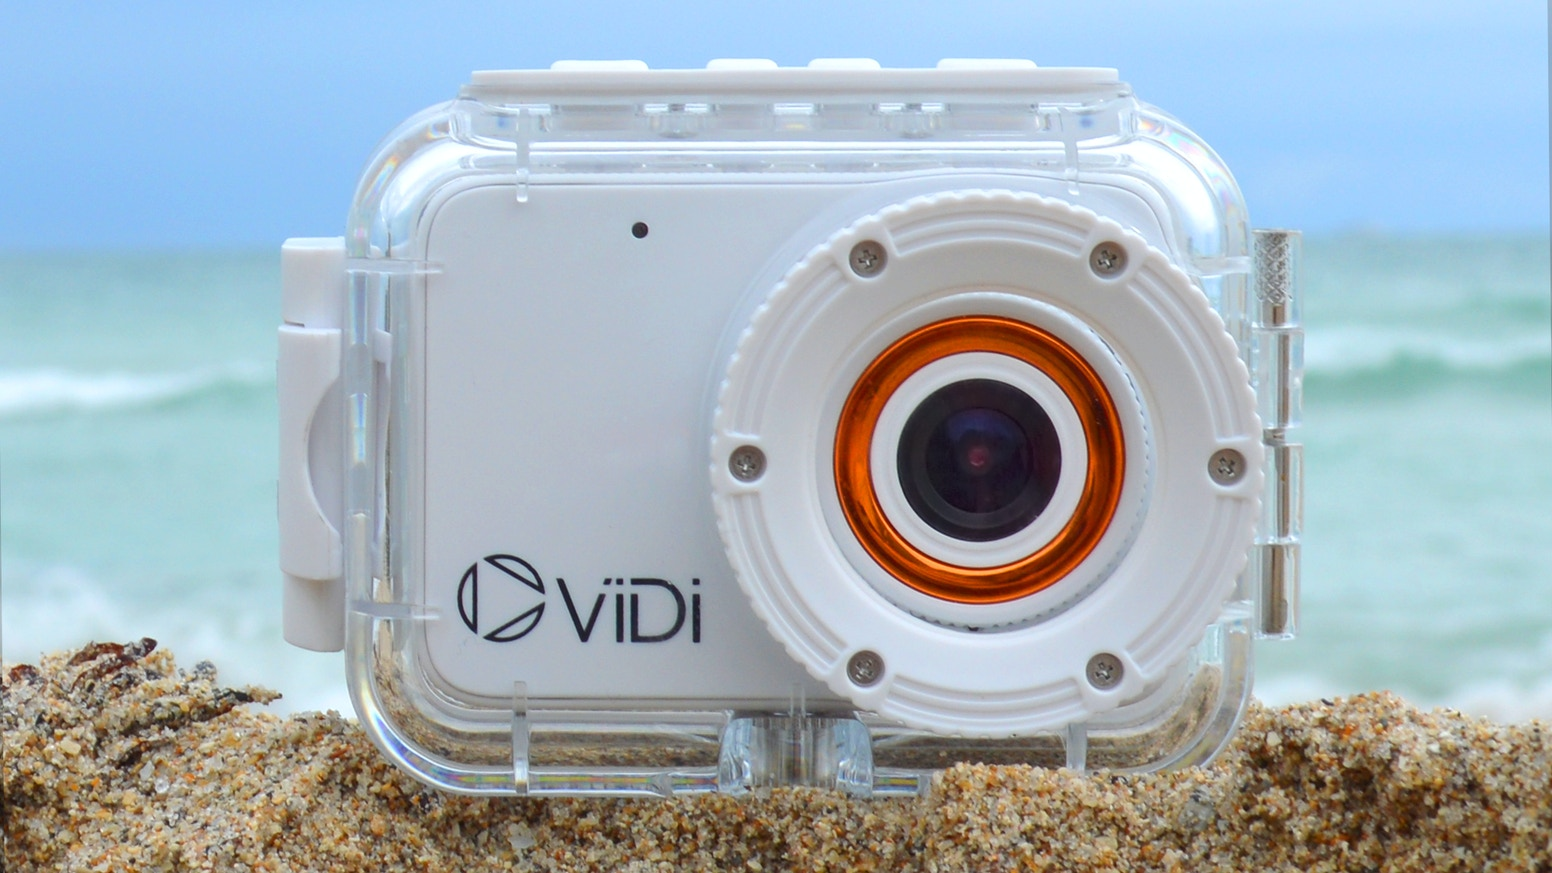 It's simple. We made an action camera that puts Pro-Grade results within everyone's reach.